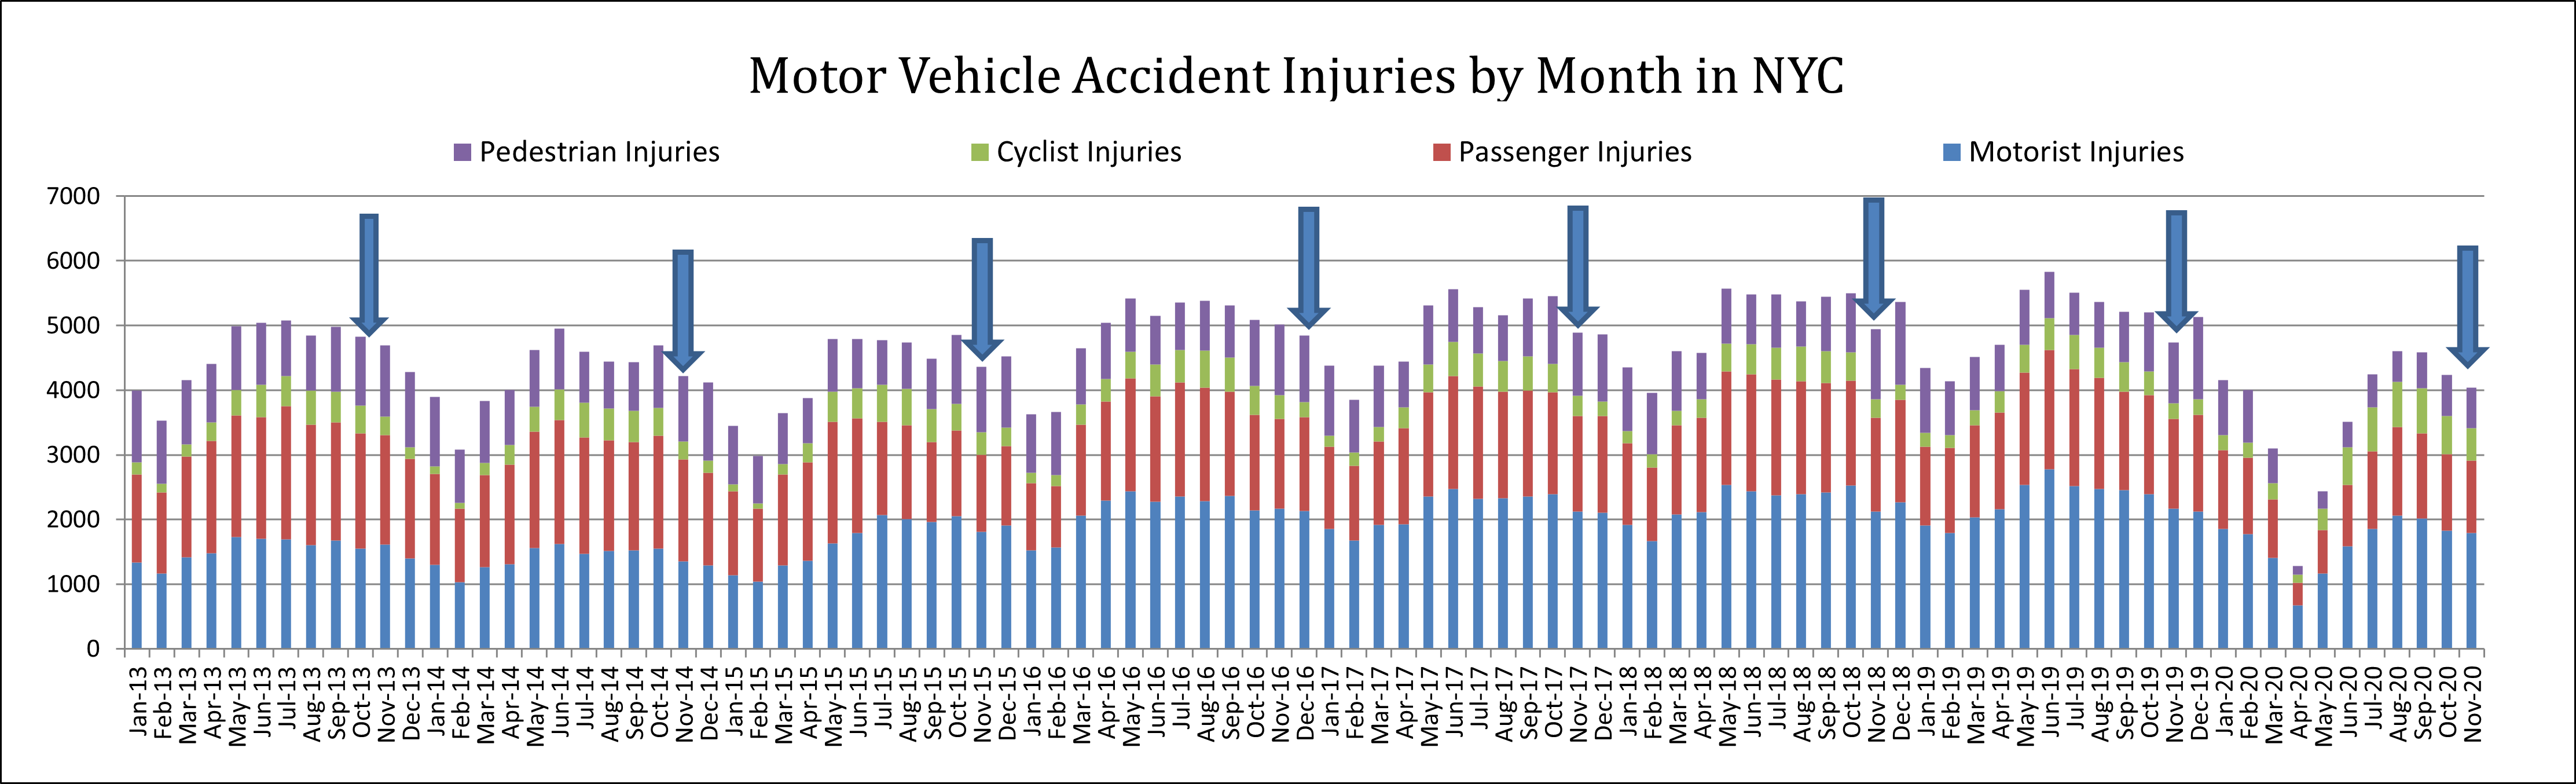 Traffic Accident Injuries NYC November 2020